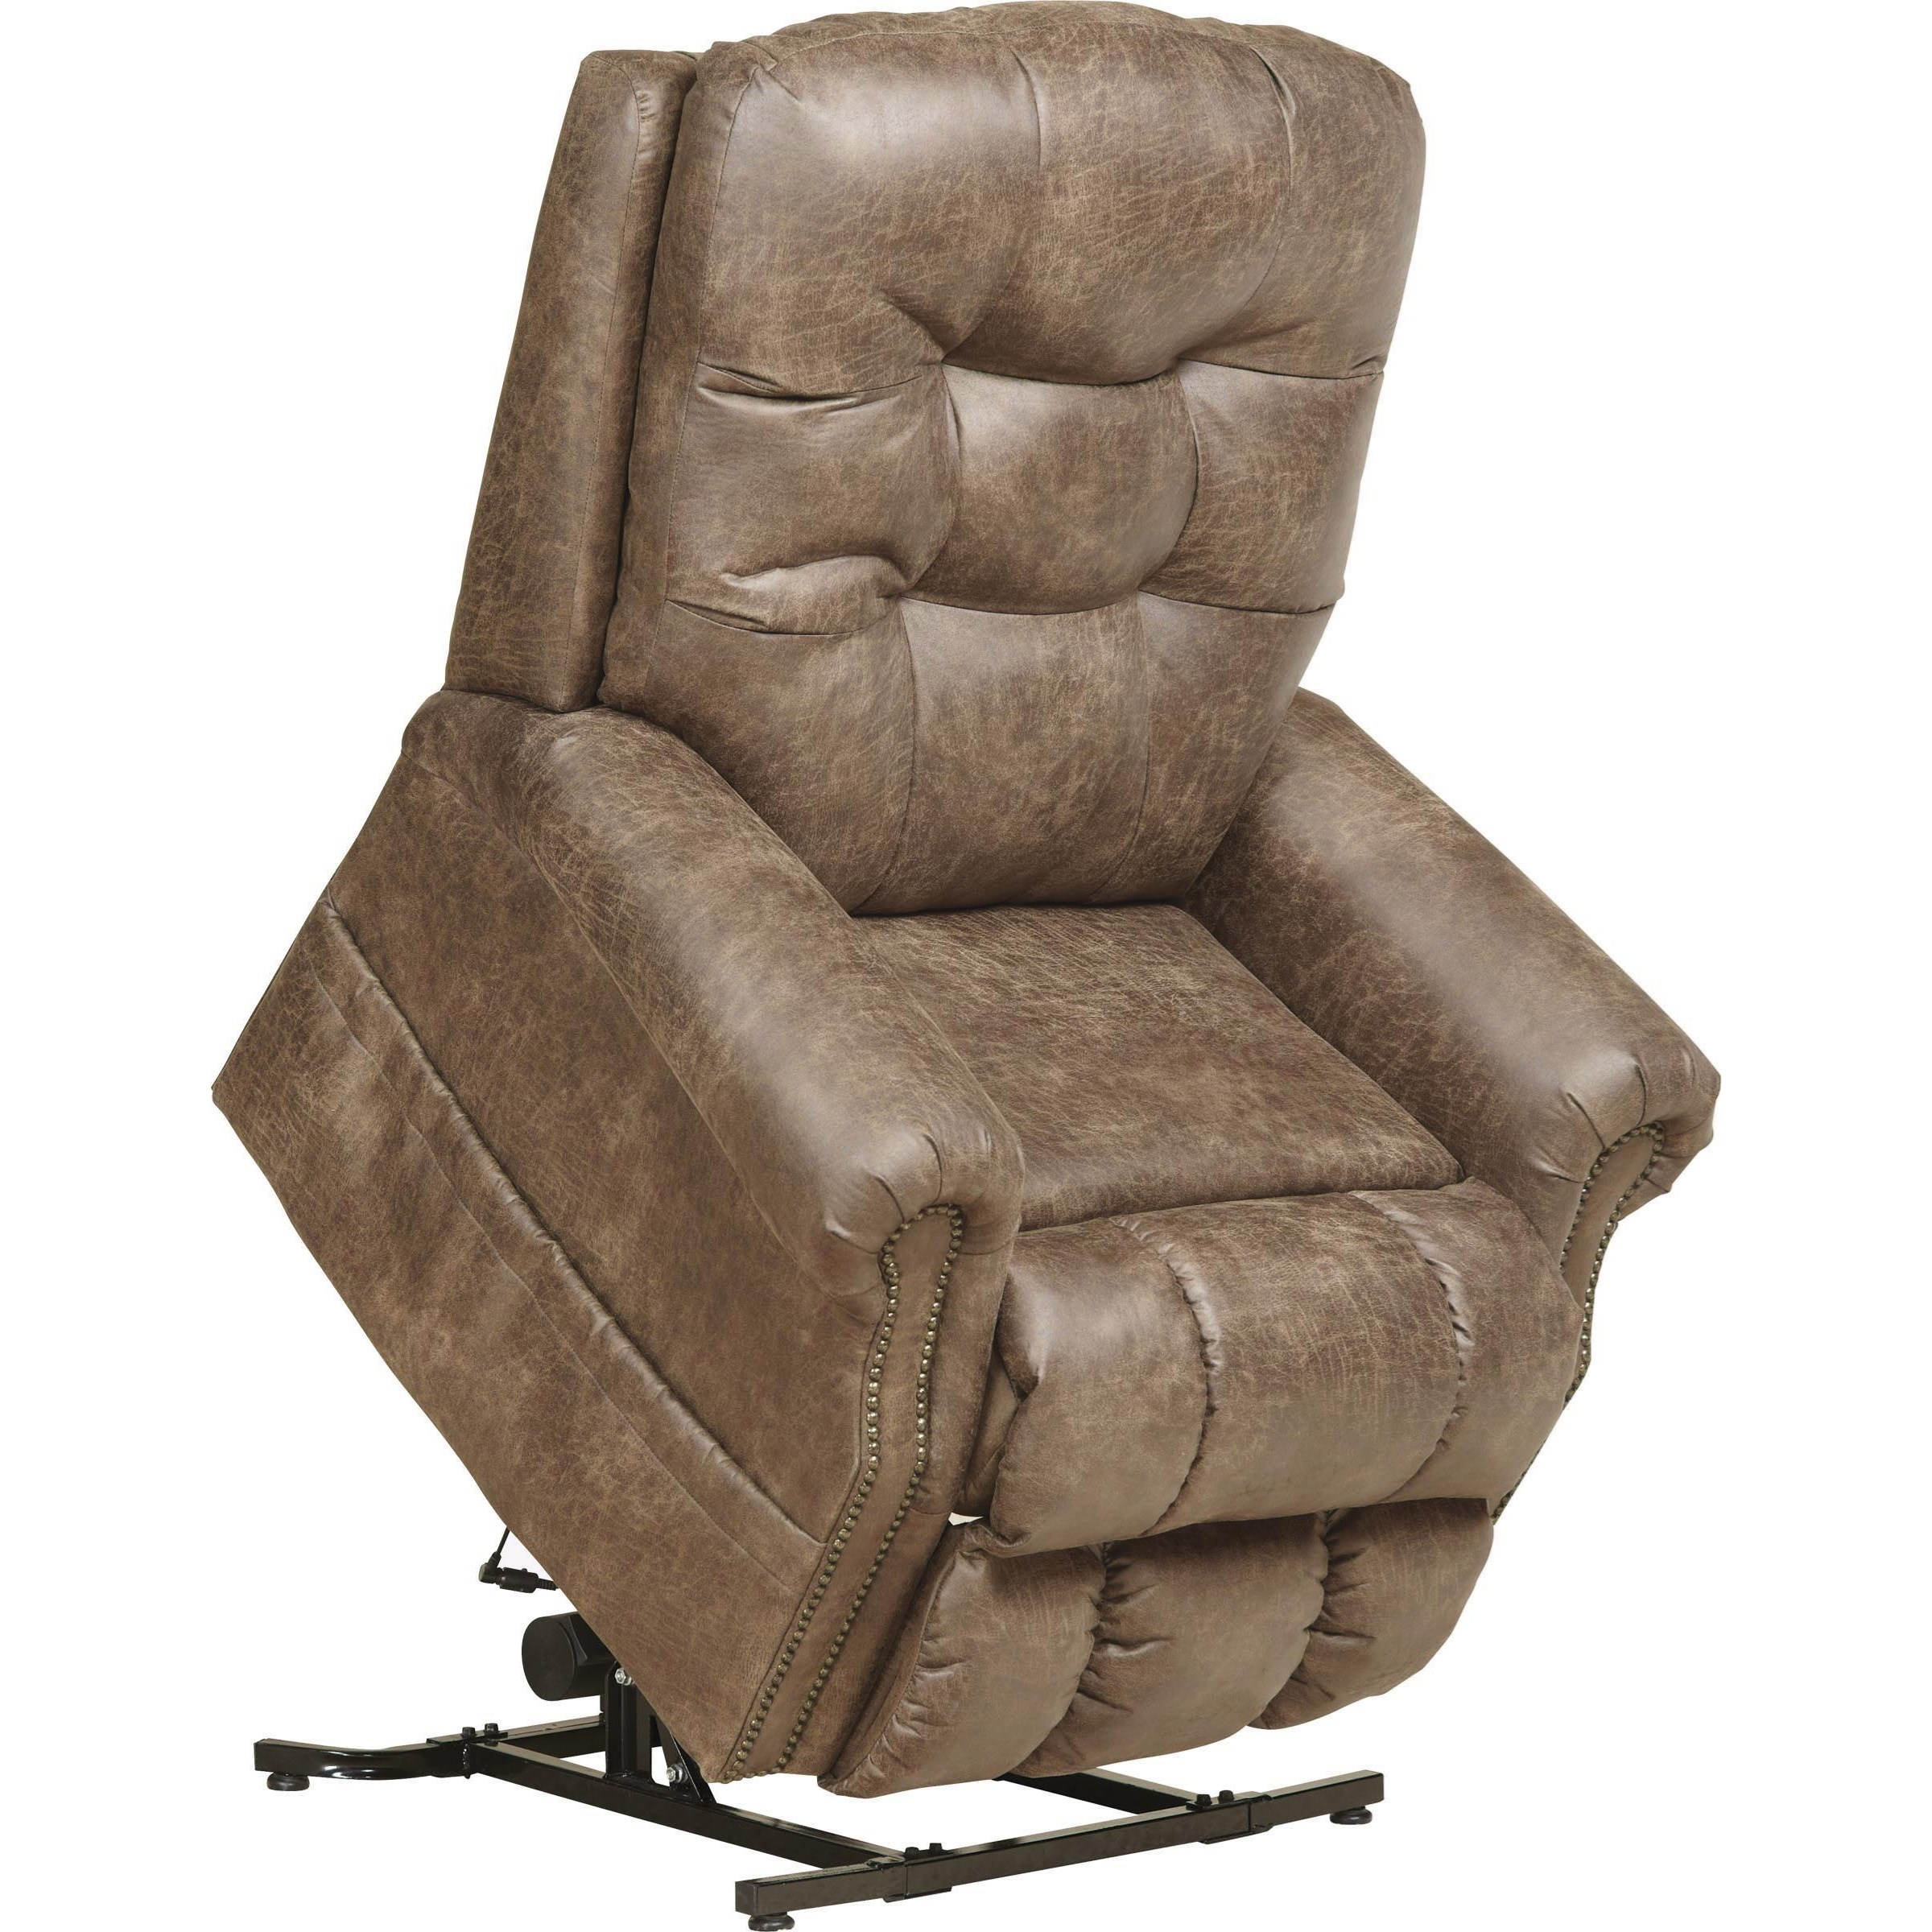 Lift Chairs Recliners Ramsey Lift Chair With Heat And Massage By Catnapper